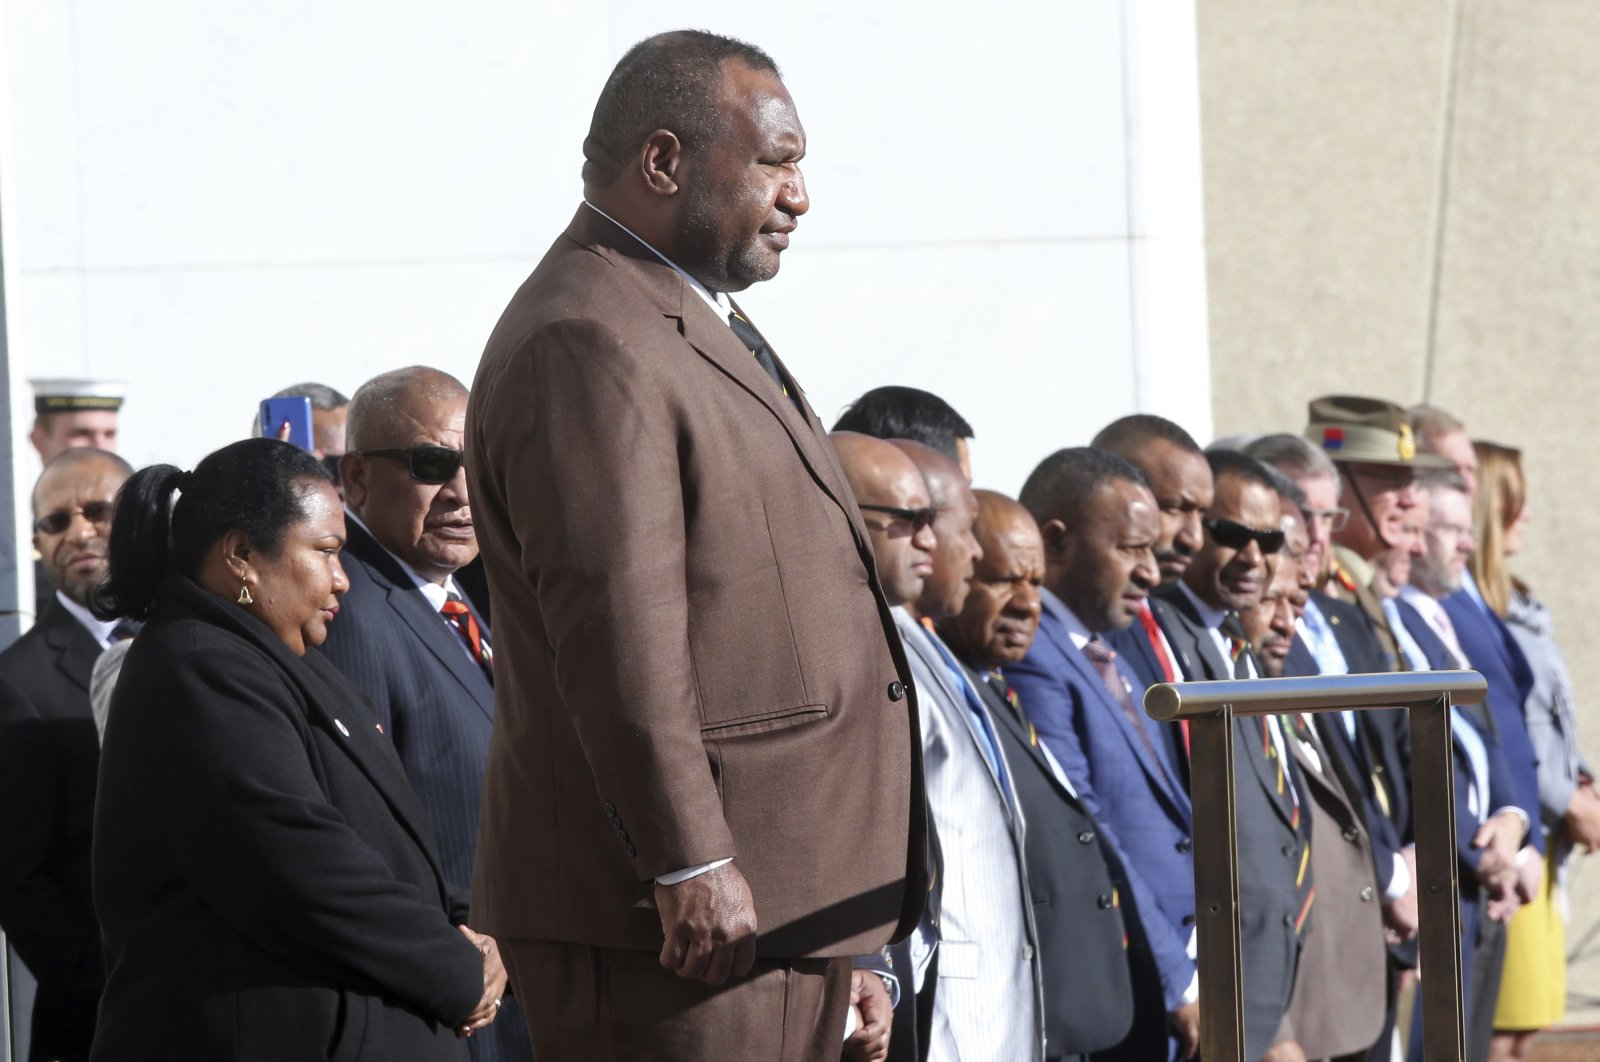 Papua New Guinea Prime Minister James Marape stands on a podium before inspecting troops as he is officially welcomed to Australia's Parliament House in Canberra, July 22, 2019. (AP Photo)